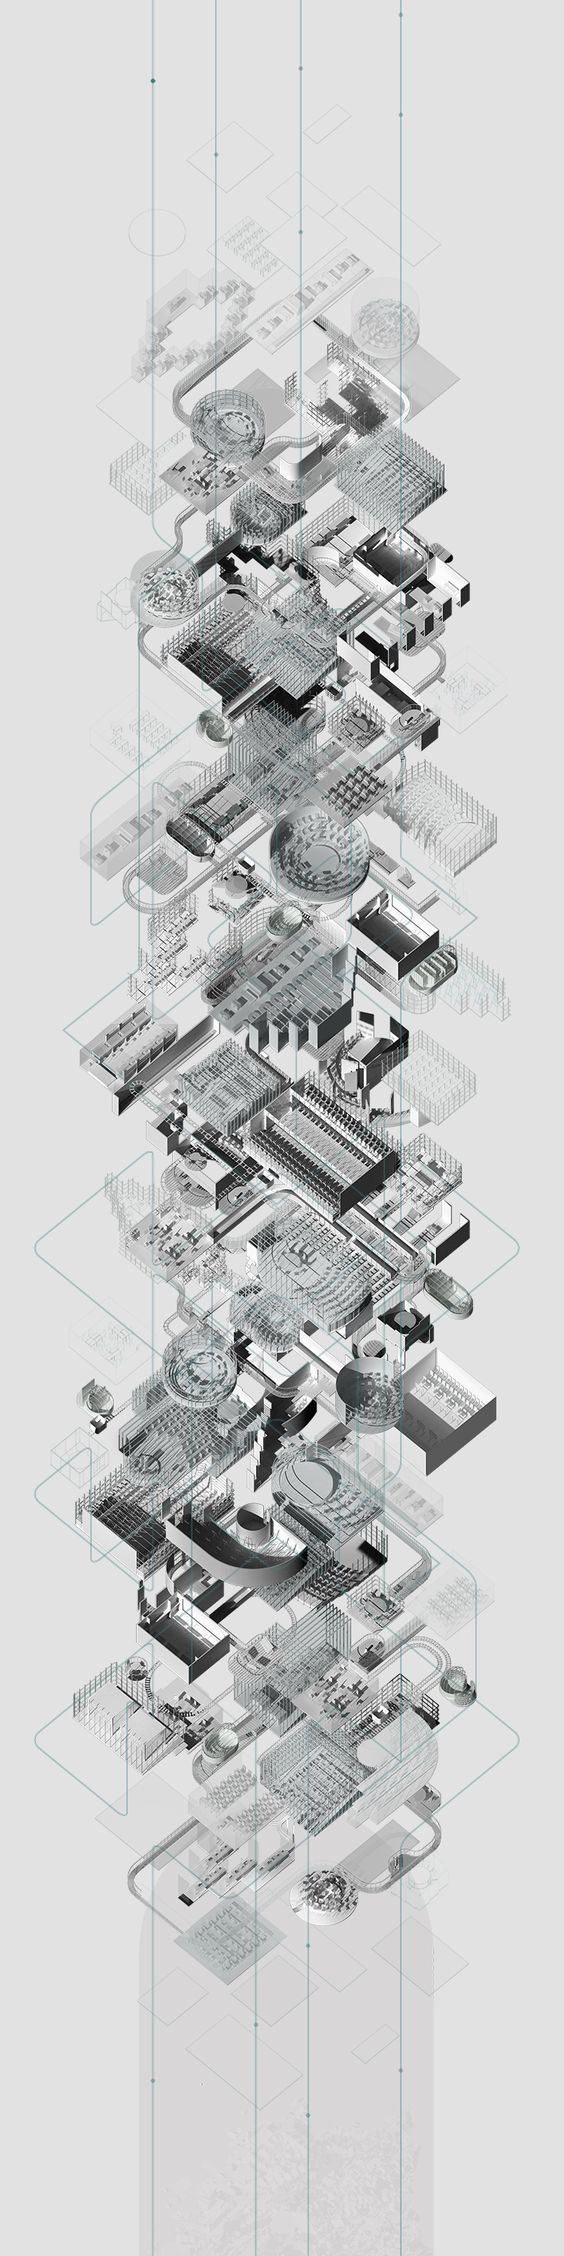 AXO MAP [could be used instead of timeline   breaking down the historical progress of the site] Peter Zsuzsa, AA Intermediate 6, 2015